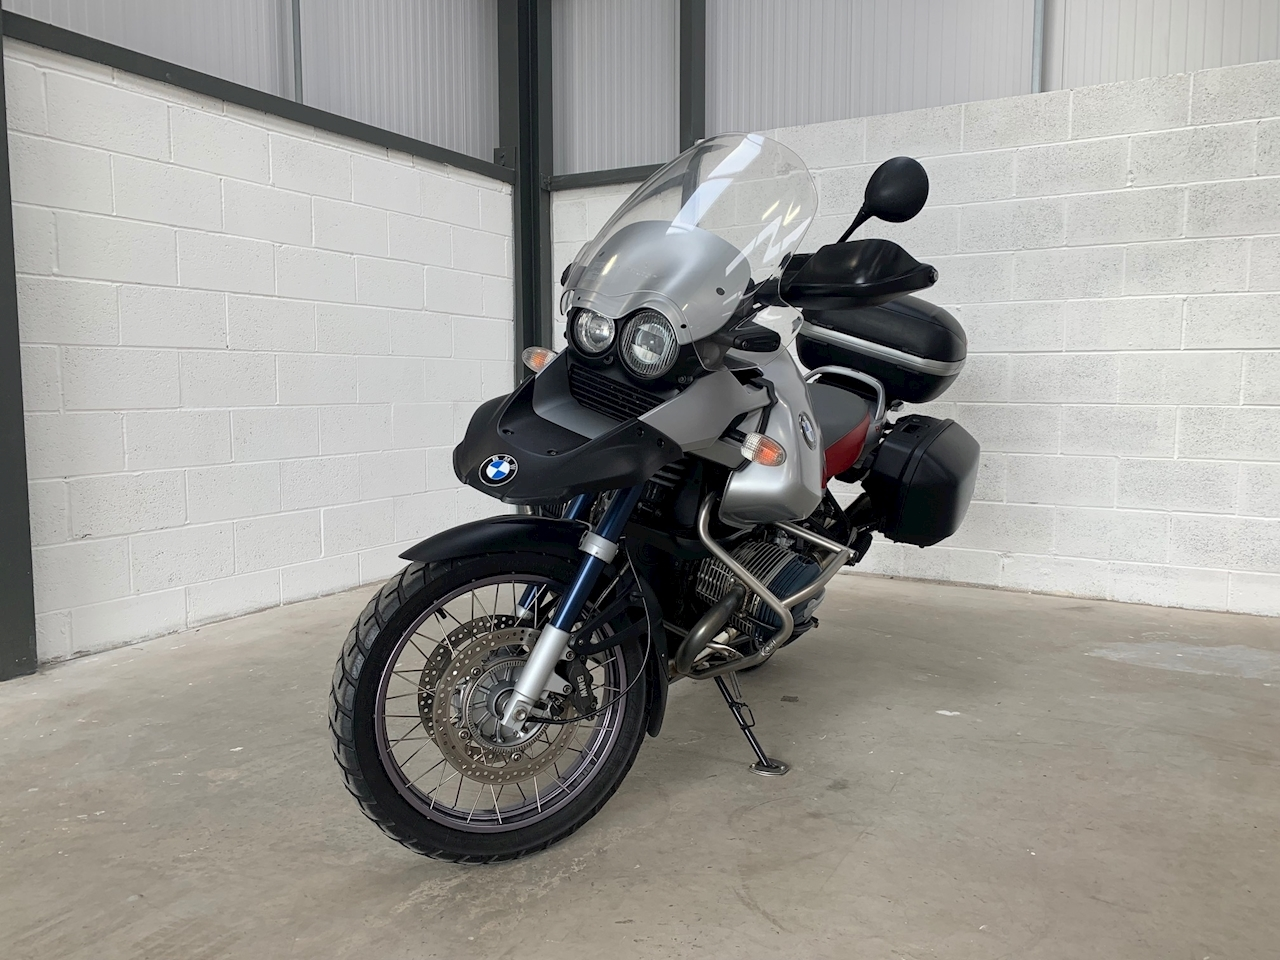 BMW R1150 GS Adventure 1150 Bike Manual Petrol